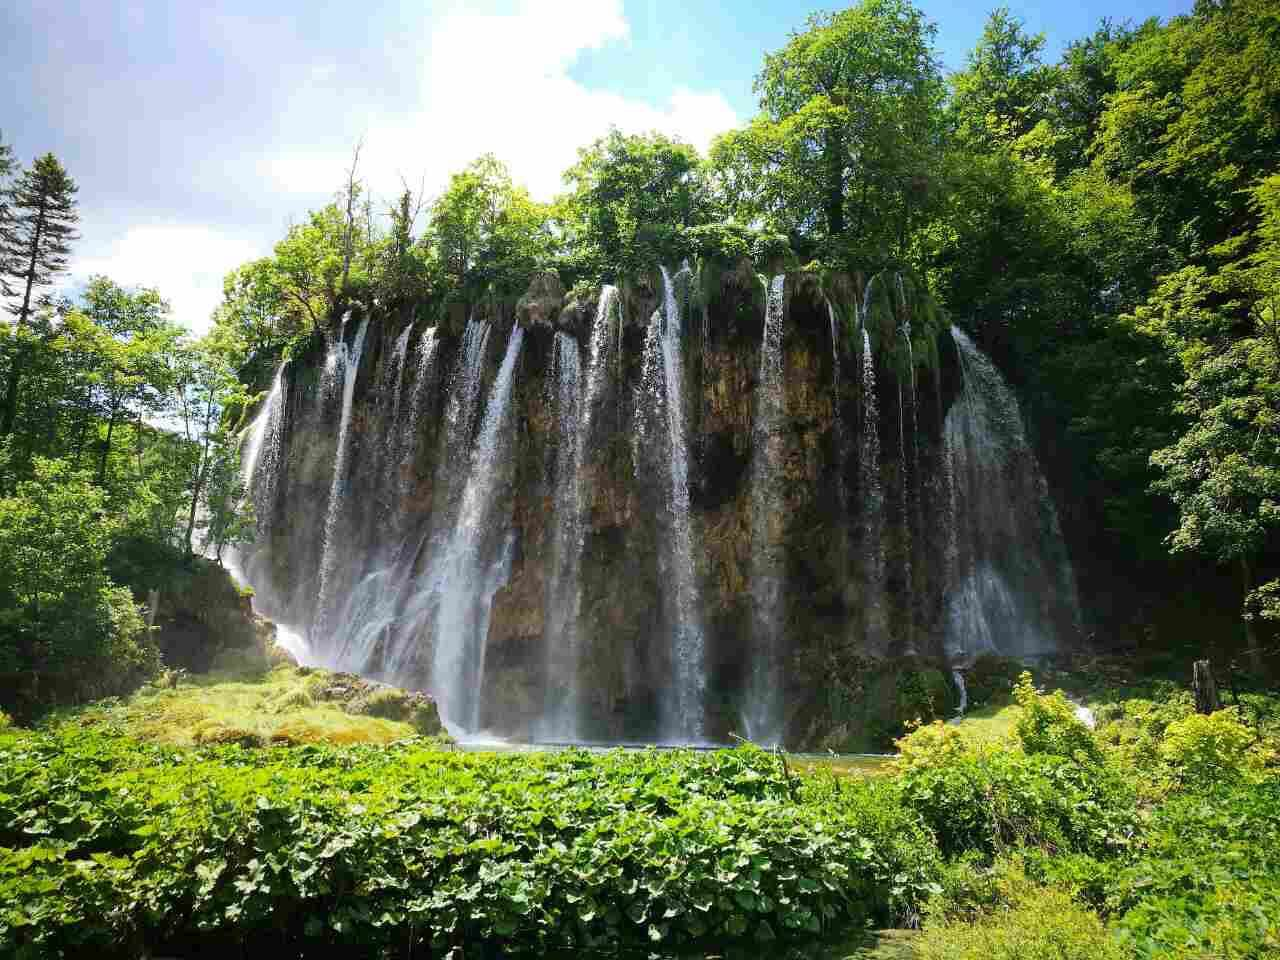 Waterfalls and green trees at Plitvice Lakes in Croatia